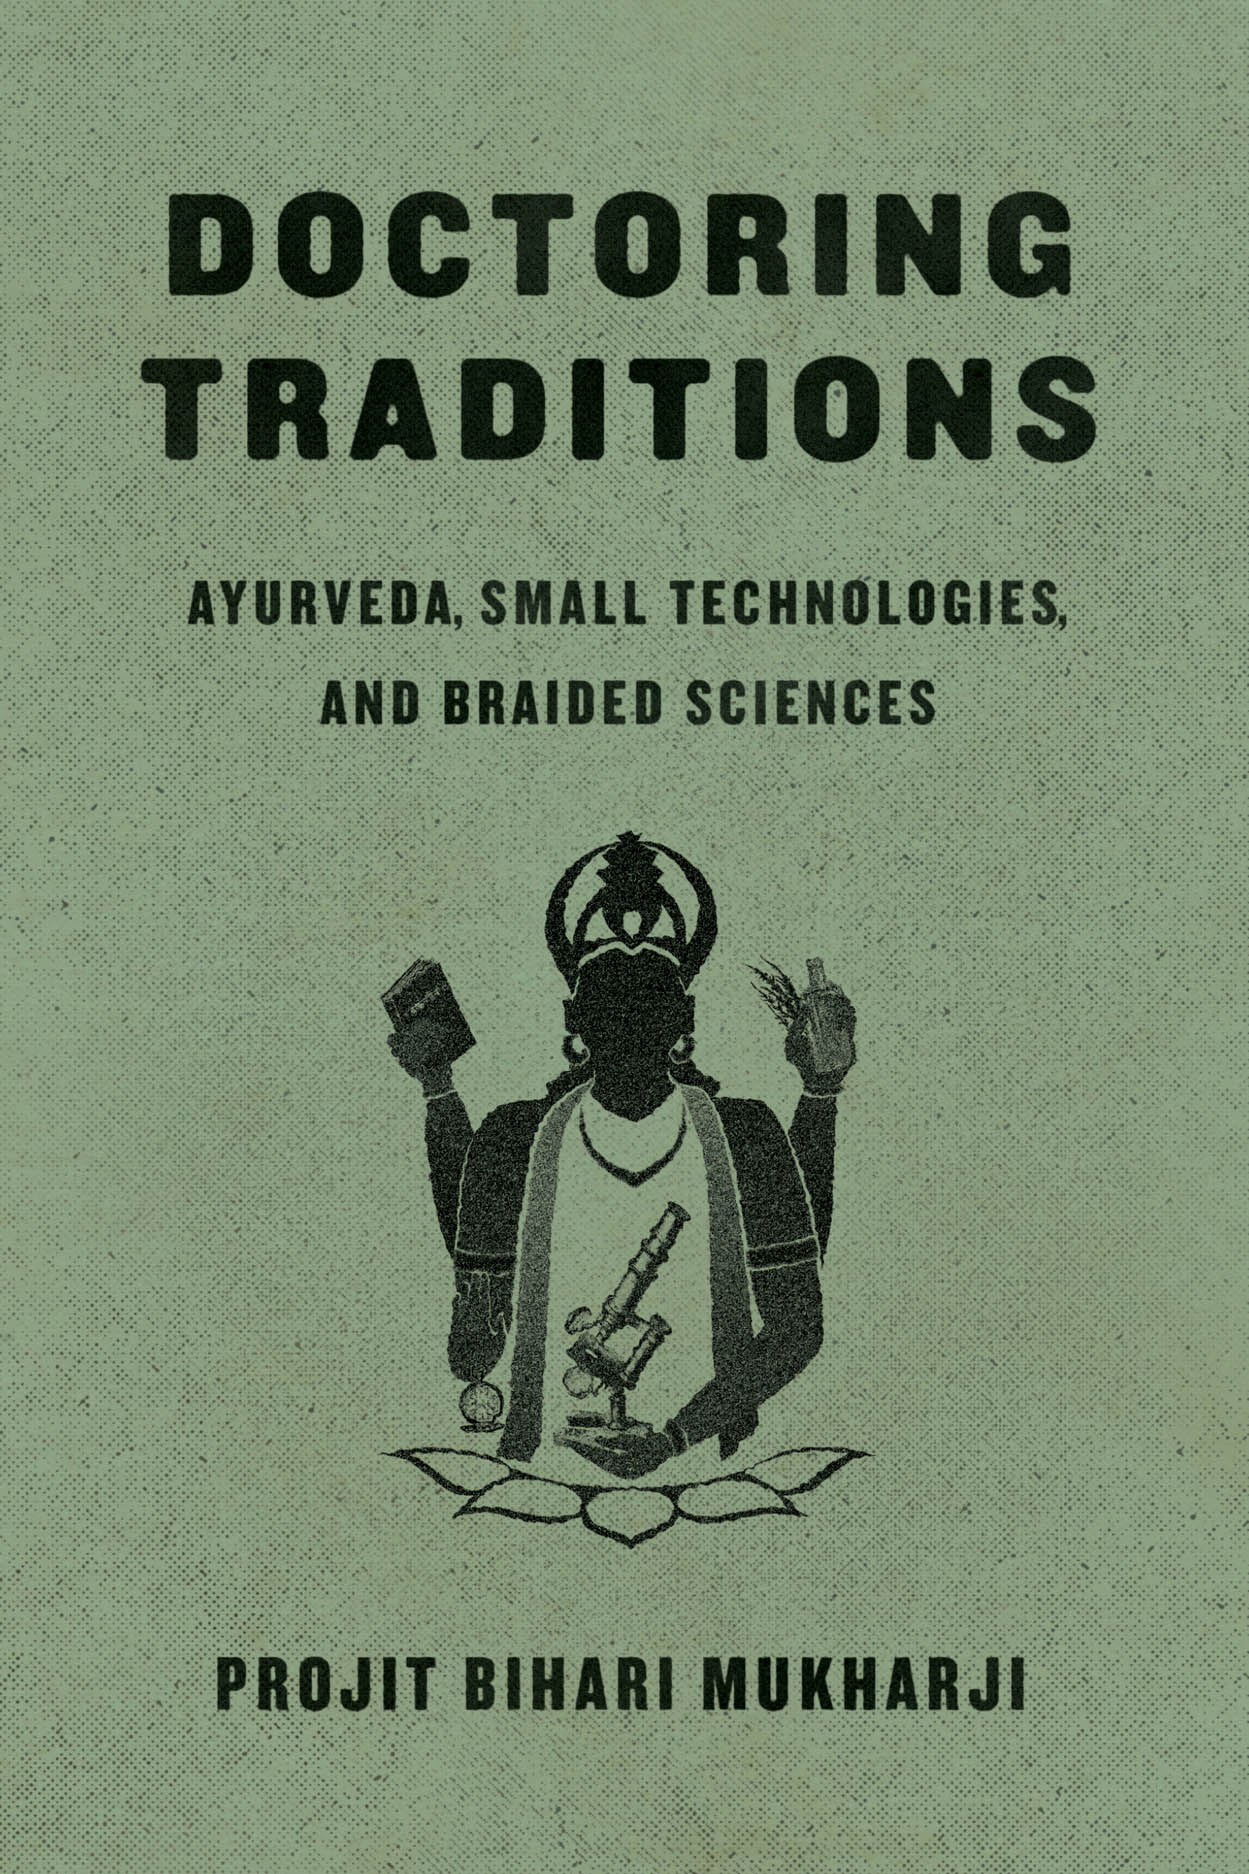 Doctoring Traditions: Ayurveda, Small Technologies, and Braided Sciences